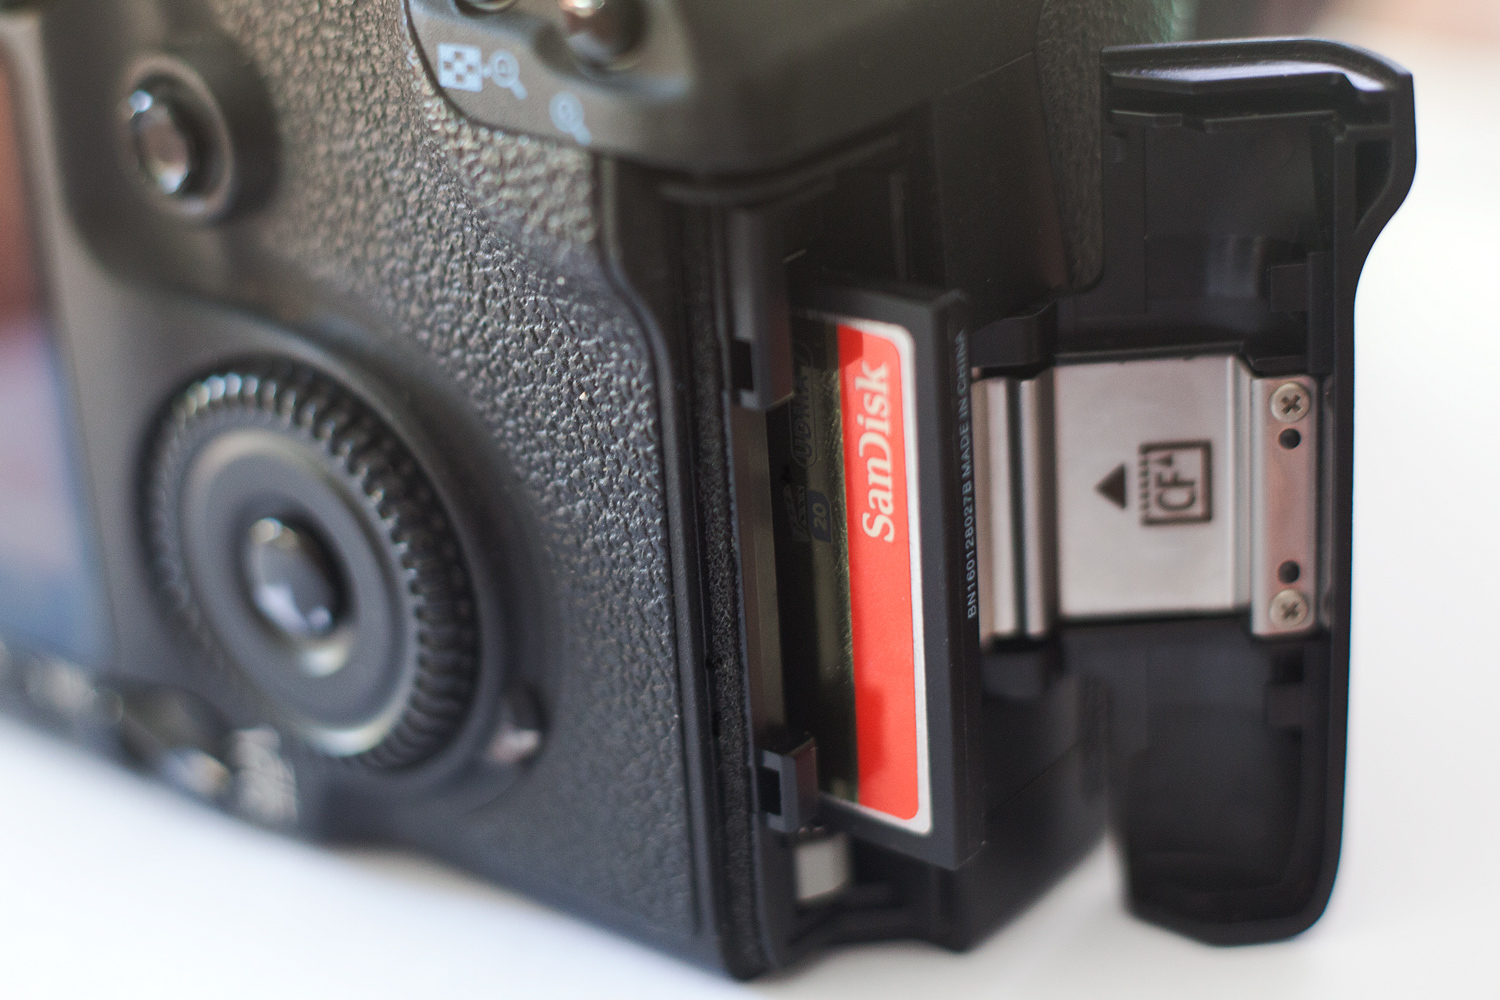 minimize-memory-card-problems-tips